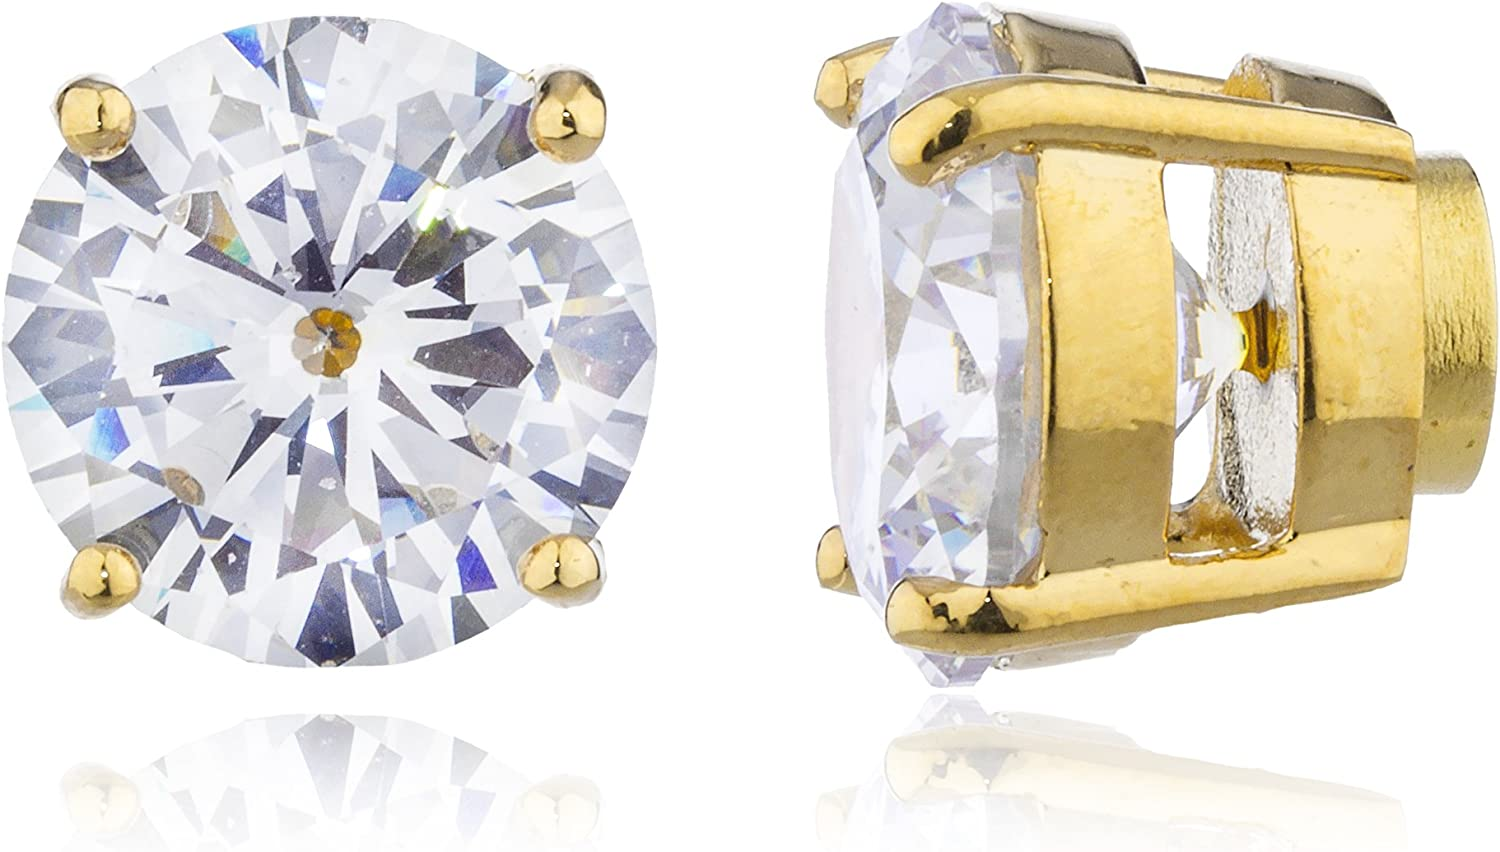 Goldtone with Clear Cz Round Magnetic Stud Earrings - 4mm to 12mm Available (Q7-KHG1-ER82)